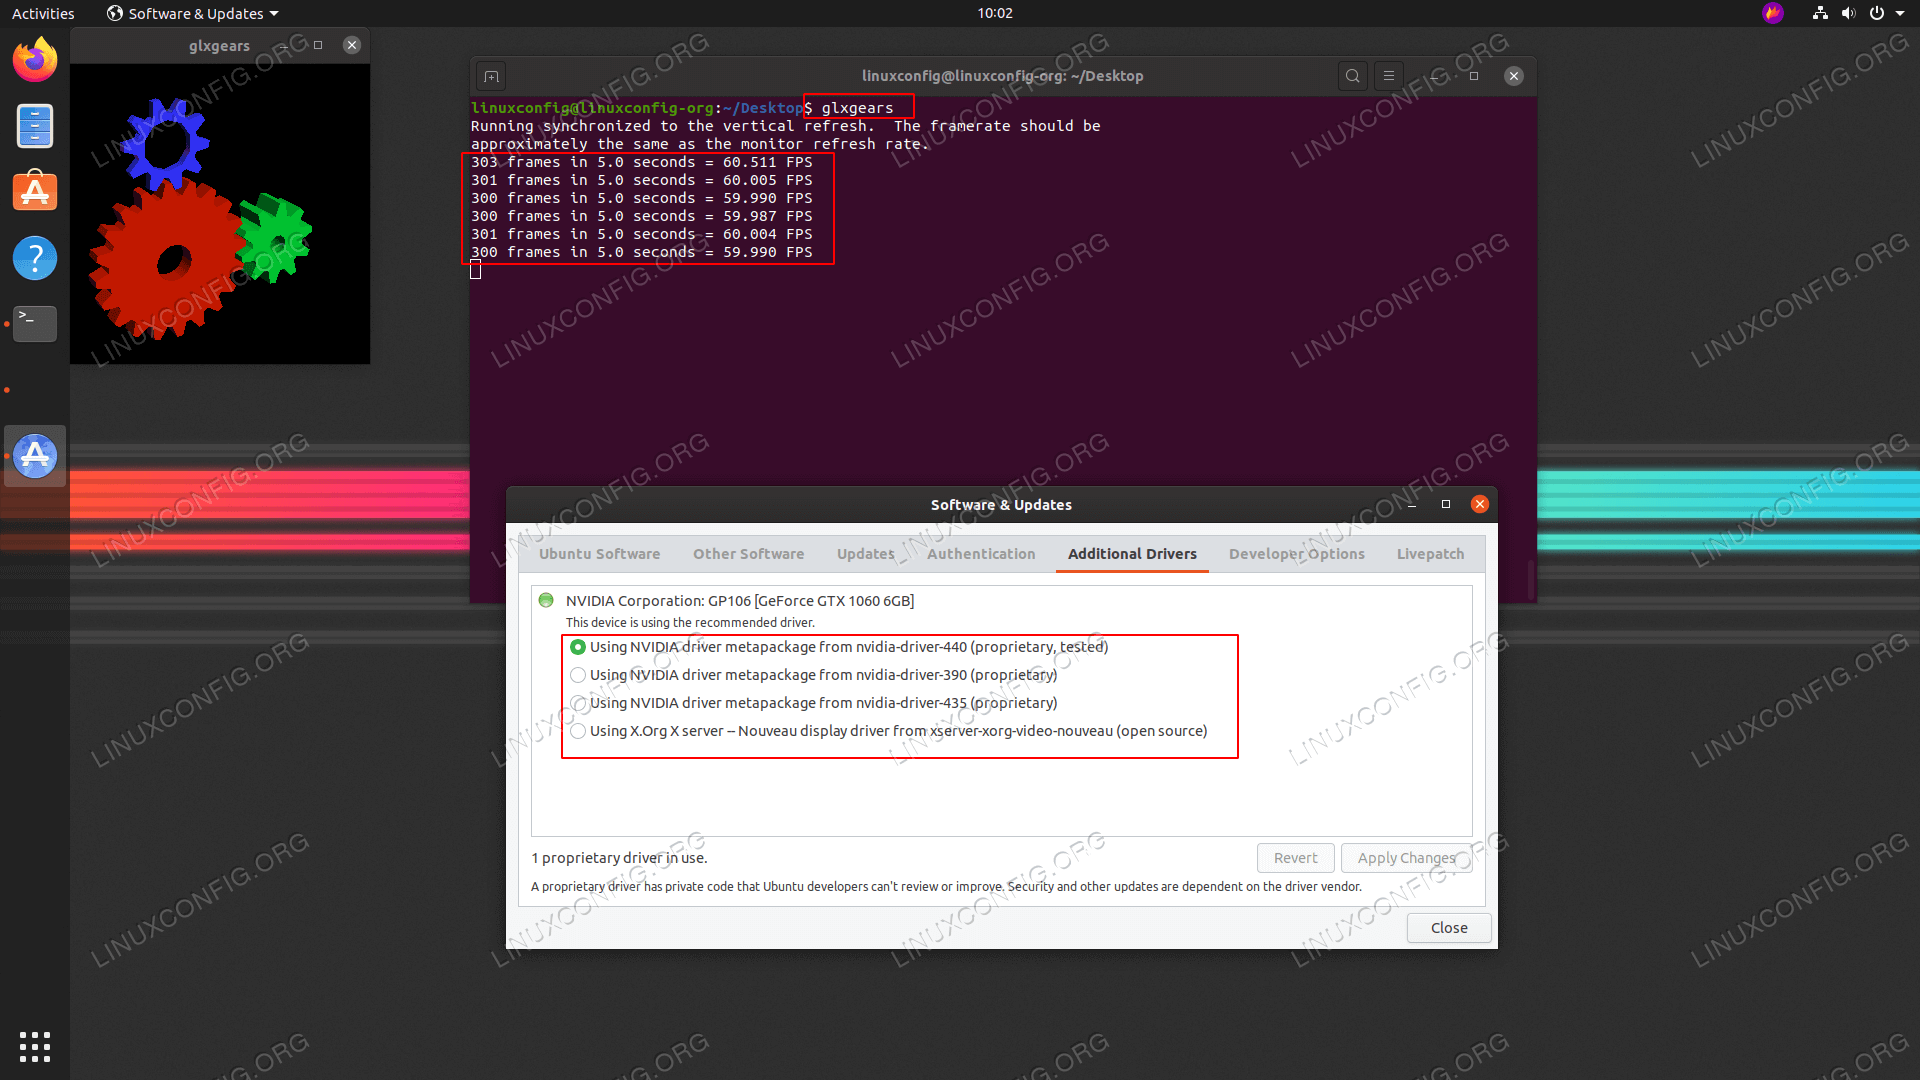 Testing 3D acceleration and FPS on Ubuntu 20.04 with glxgears